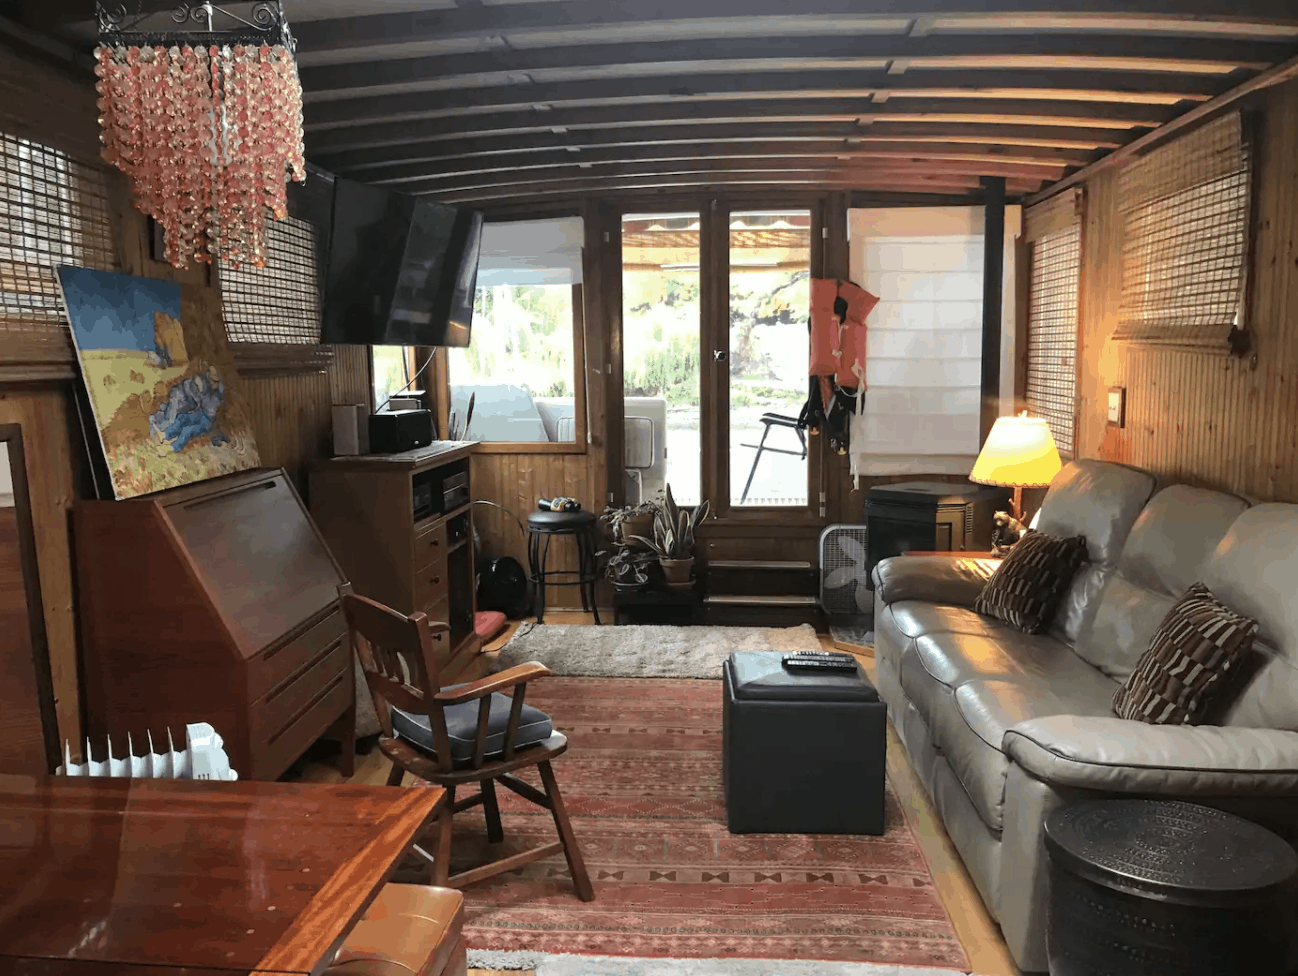 Seattle Houseboats - The Cabin